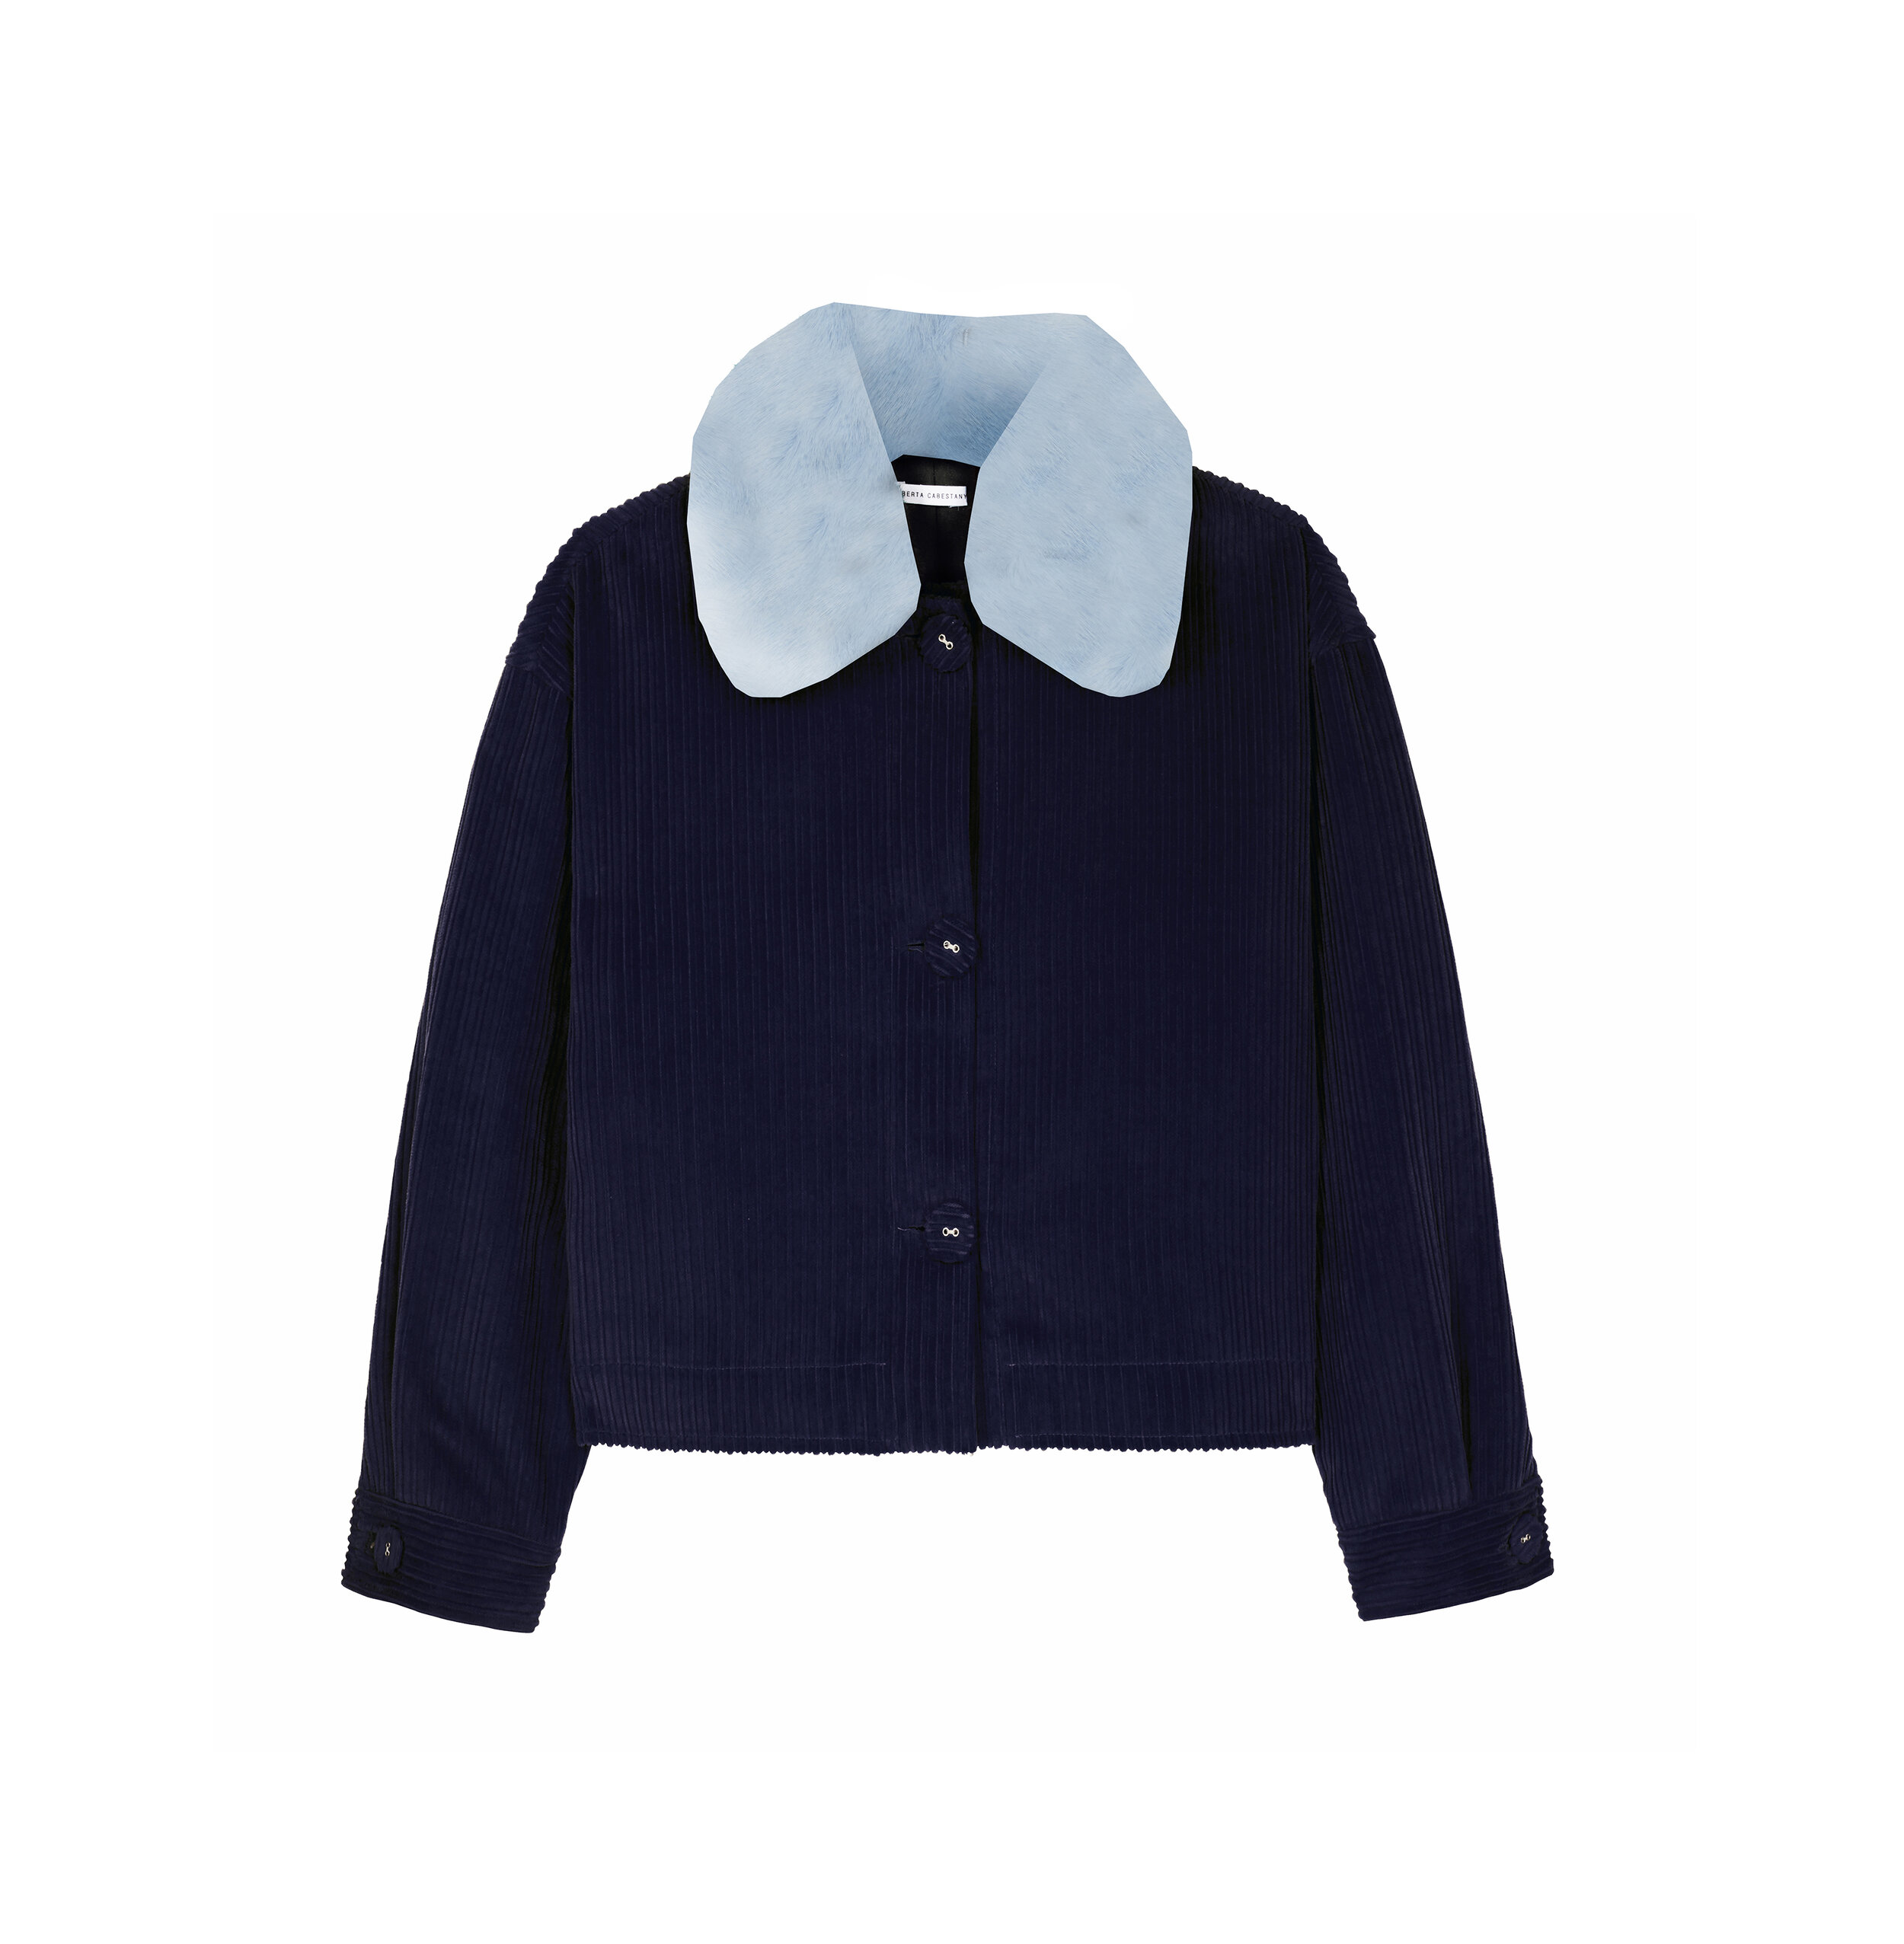 Piña Jacket - Navy by Berta Cabestany on curated-crowd.com